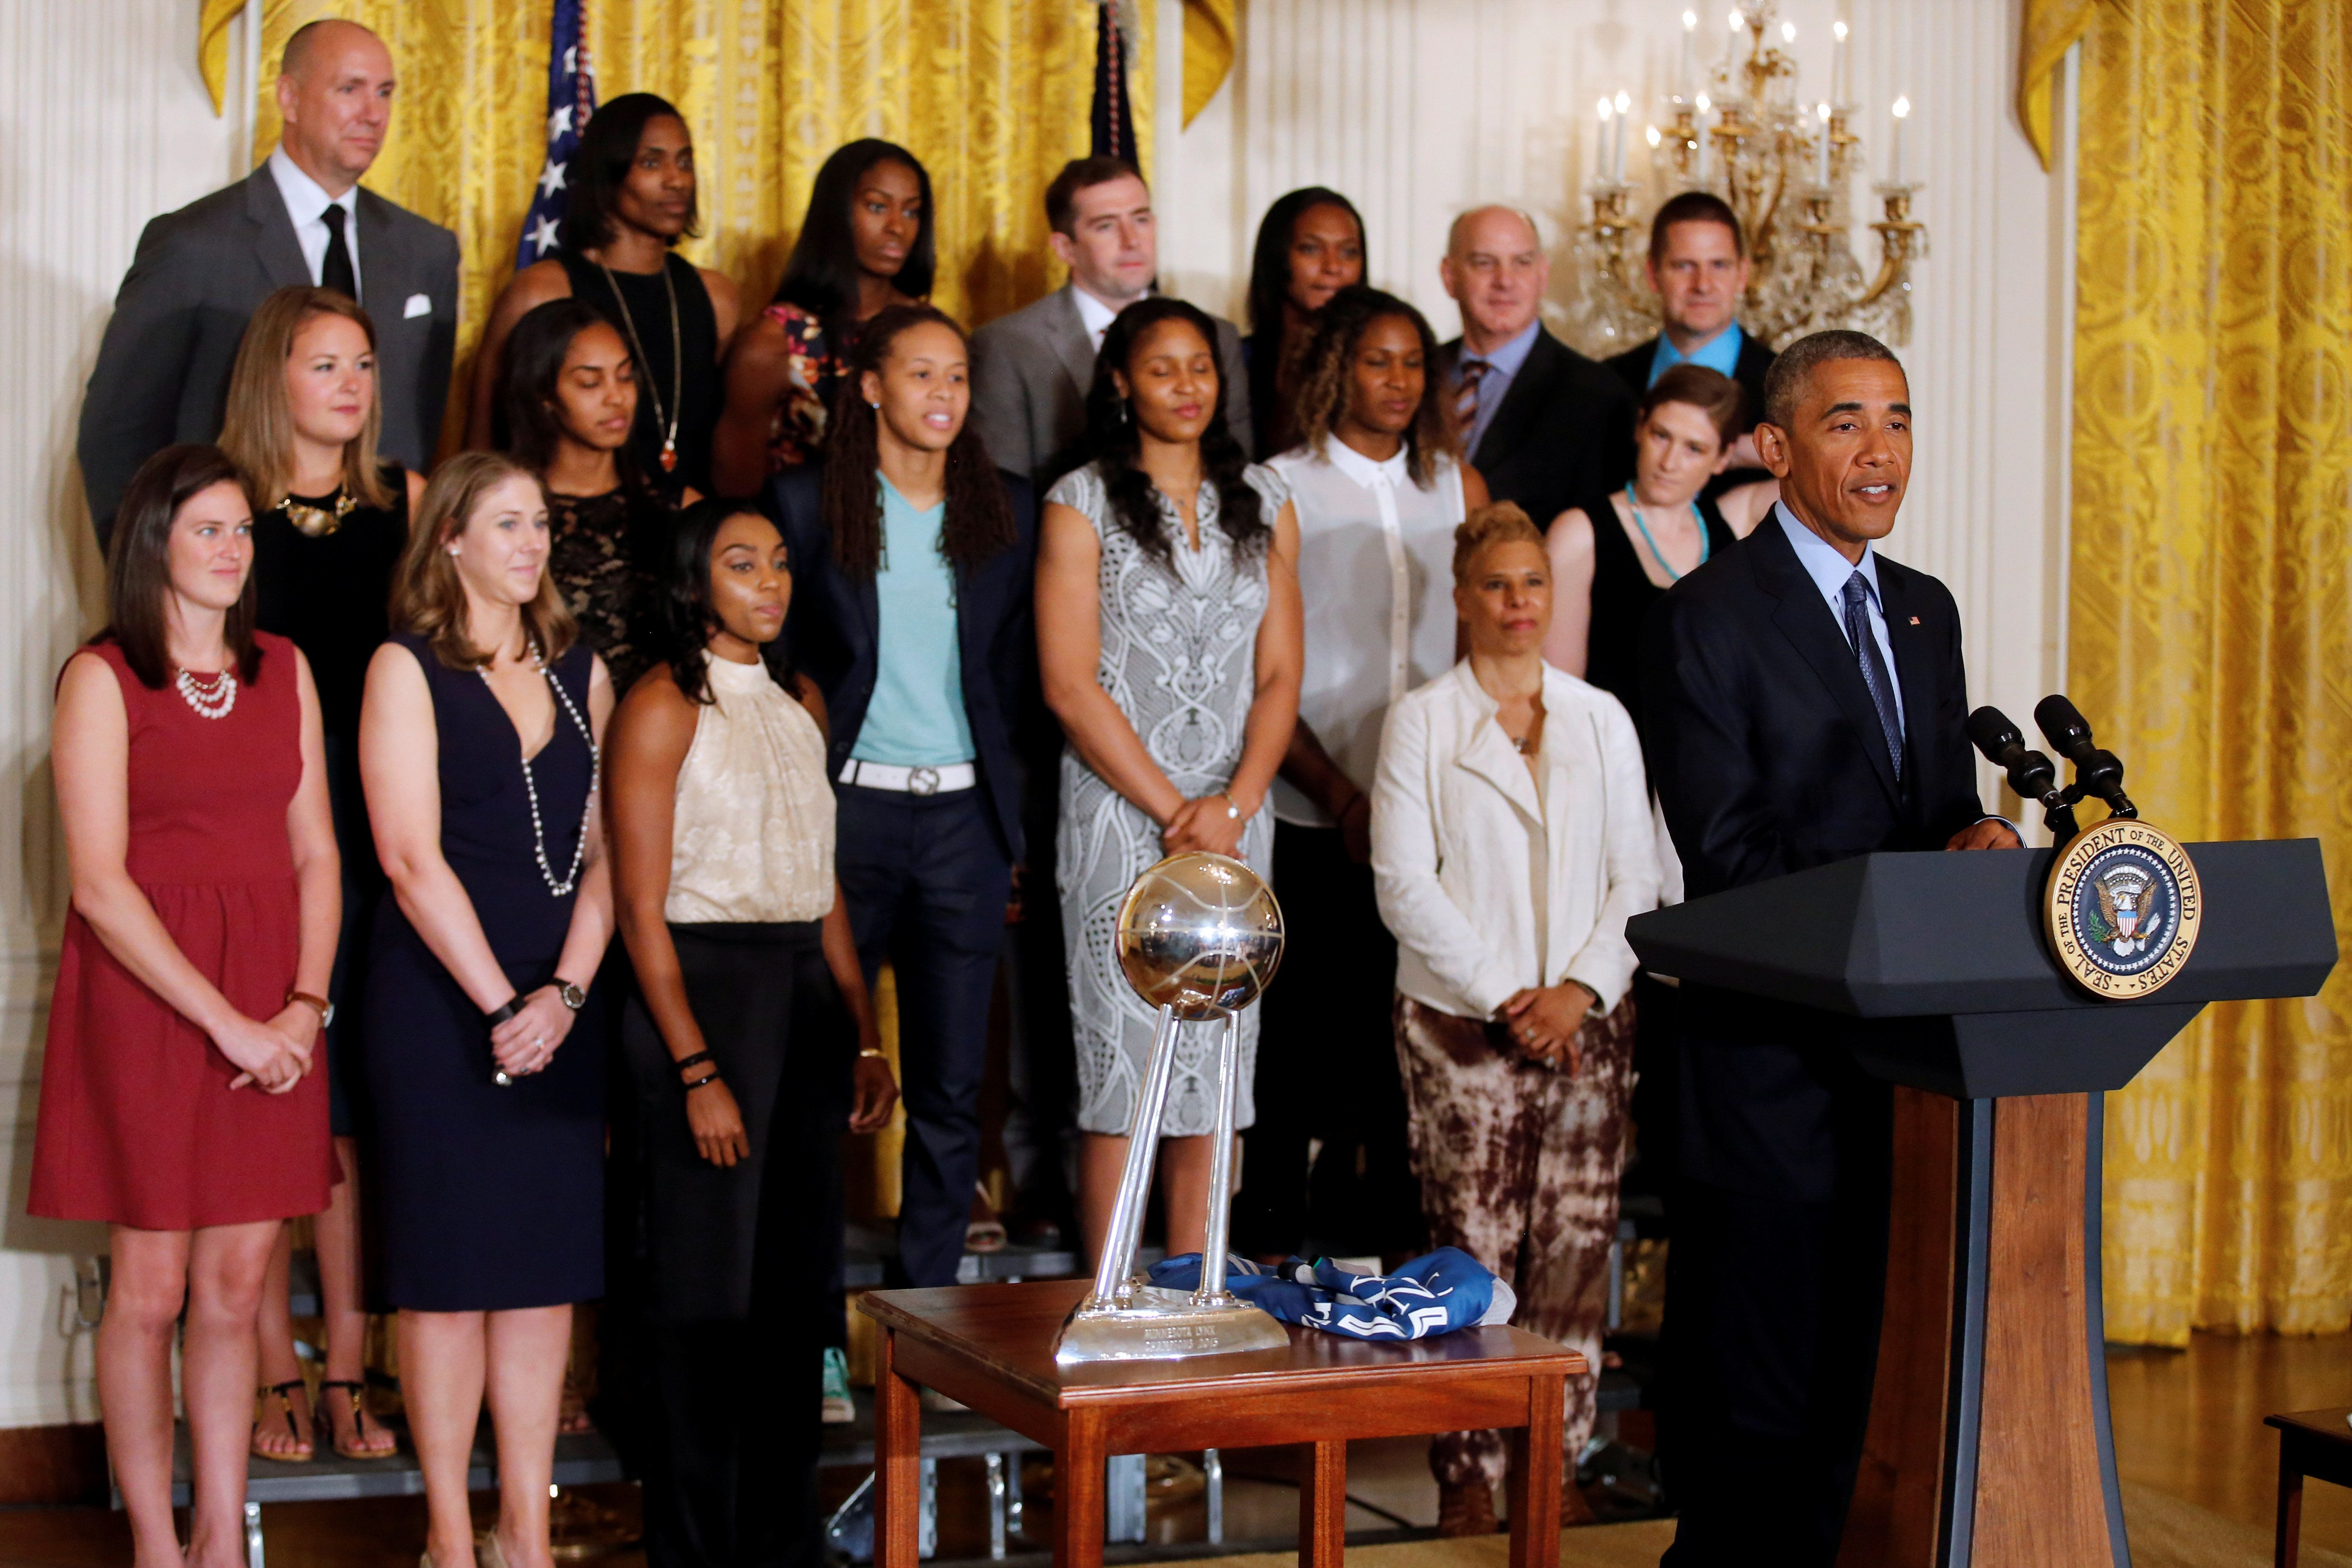 U.S. President Barack Obama attends an event to honor the 2015 WNBA Champions Minnesota Lynx basketball team at the East Room of the White House in Washington, U.S., June 27, 2016. REUTERS/Carlos Barria